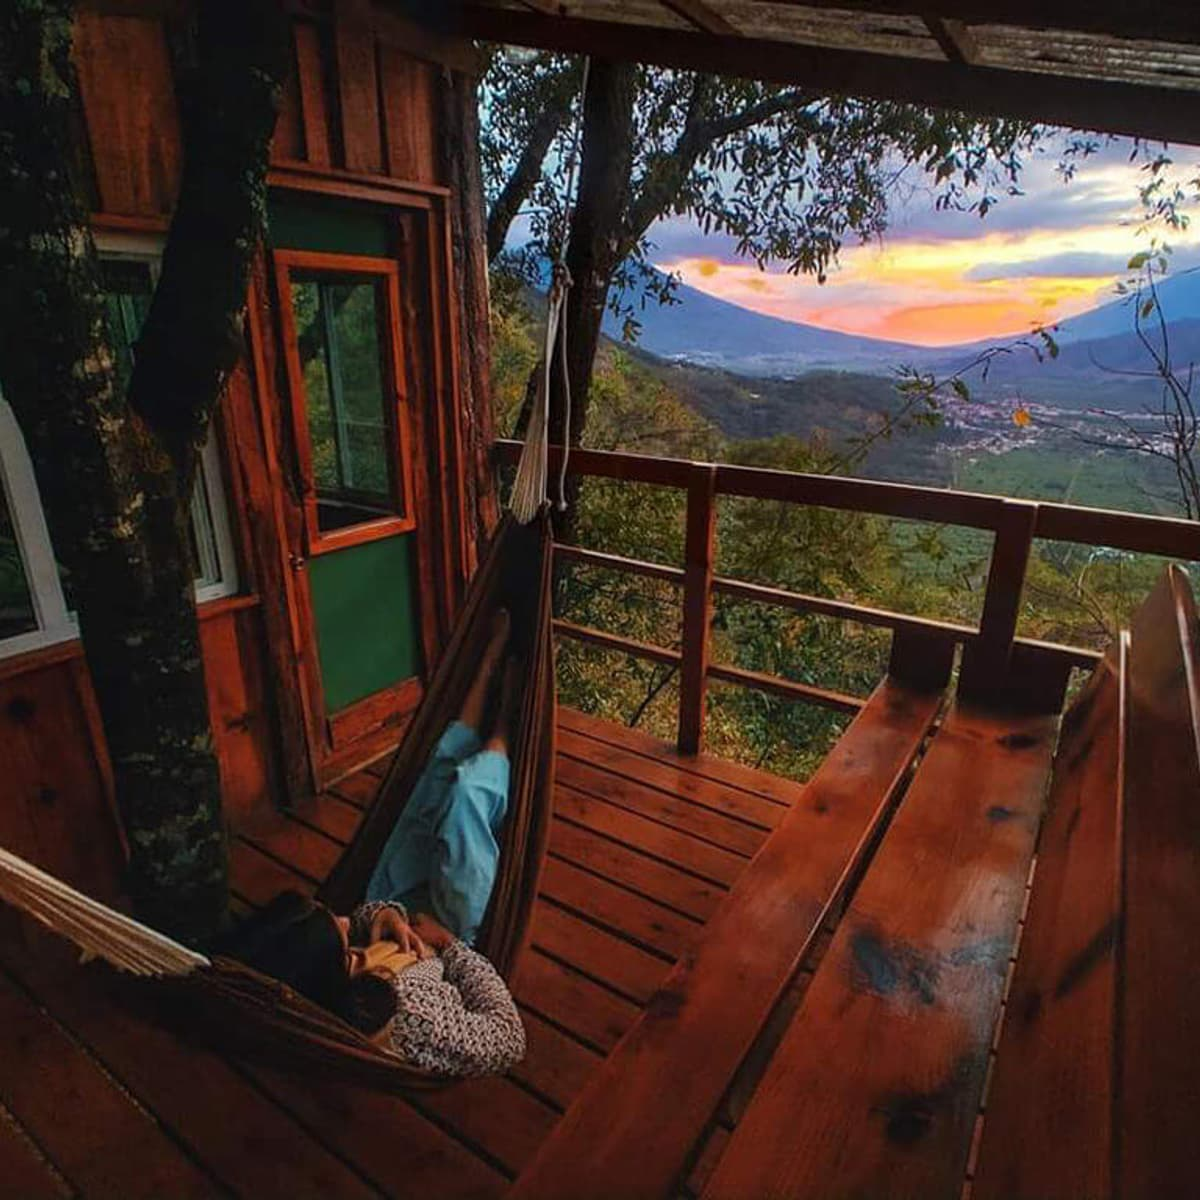 Earth lodge cabin in Guatemala on tailored itinerary